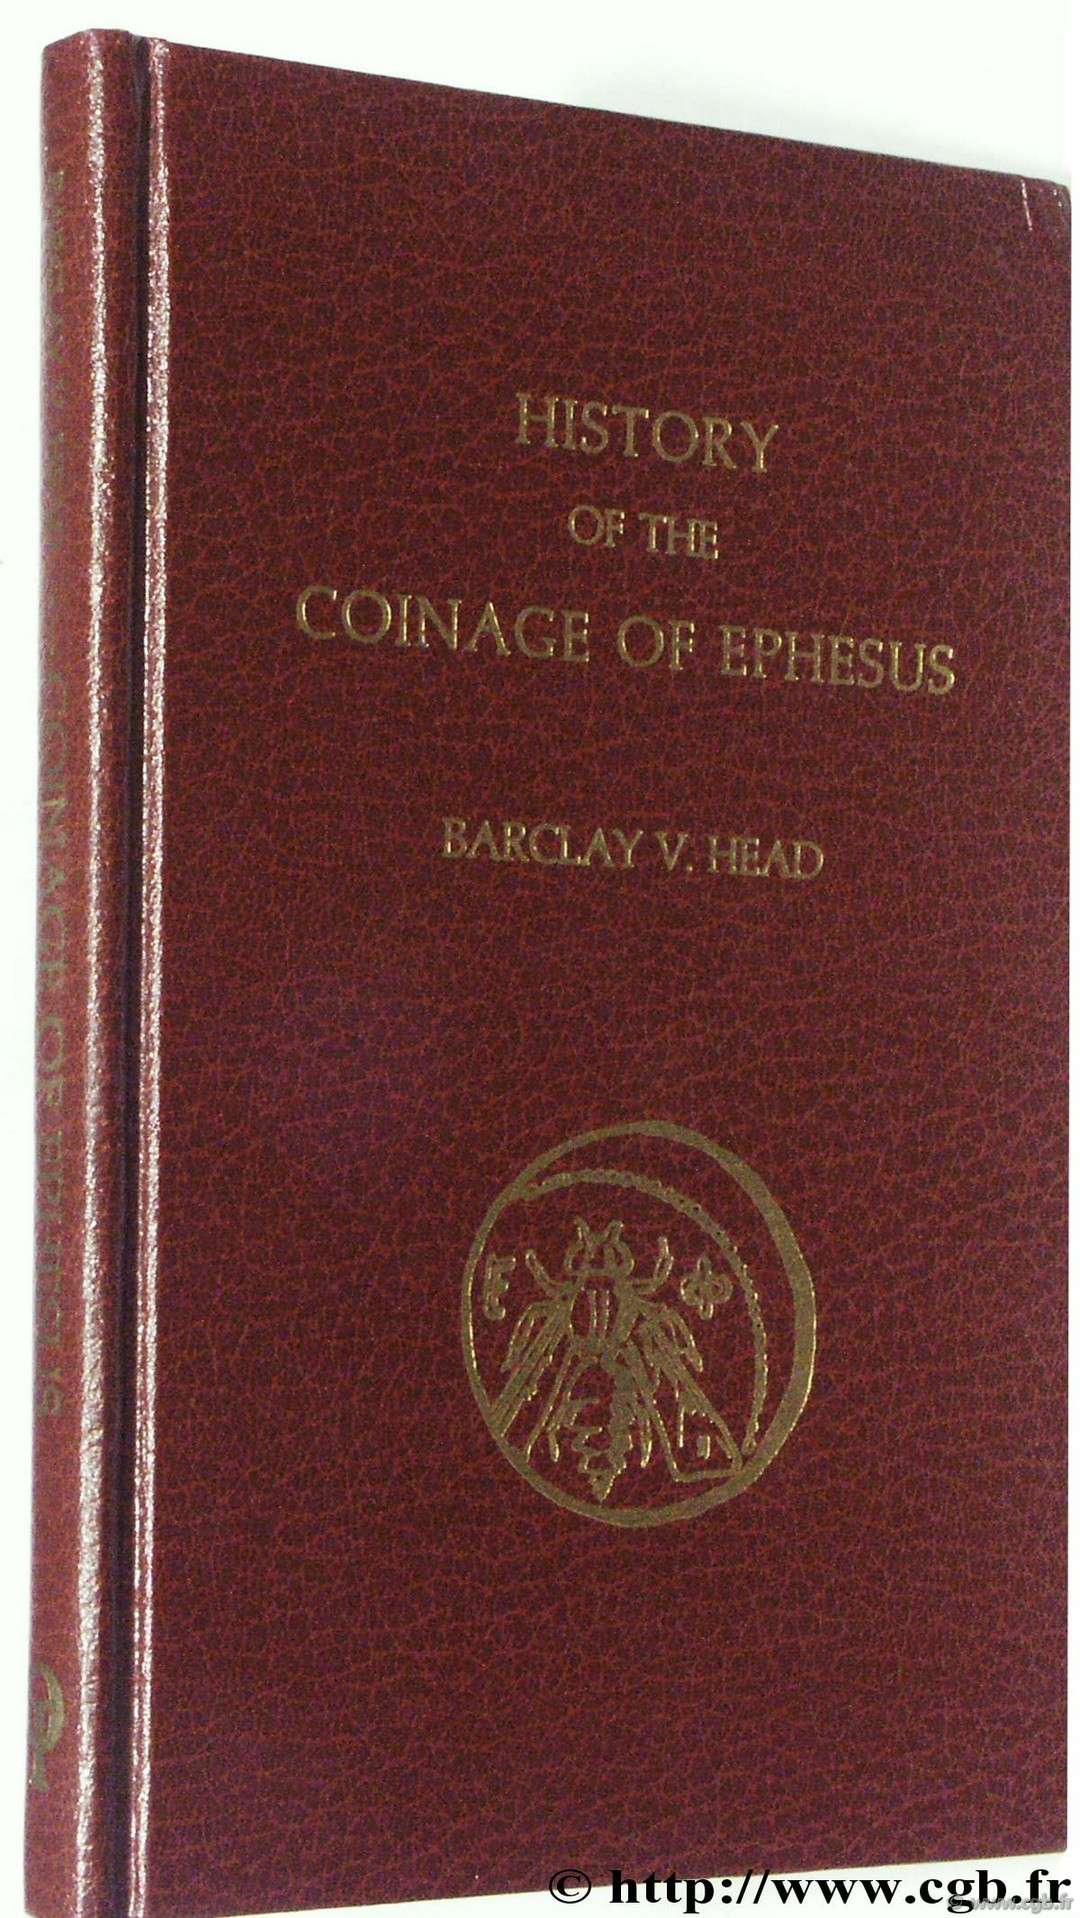 History of the Coinage of Ephesus HEAD B.-V.